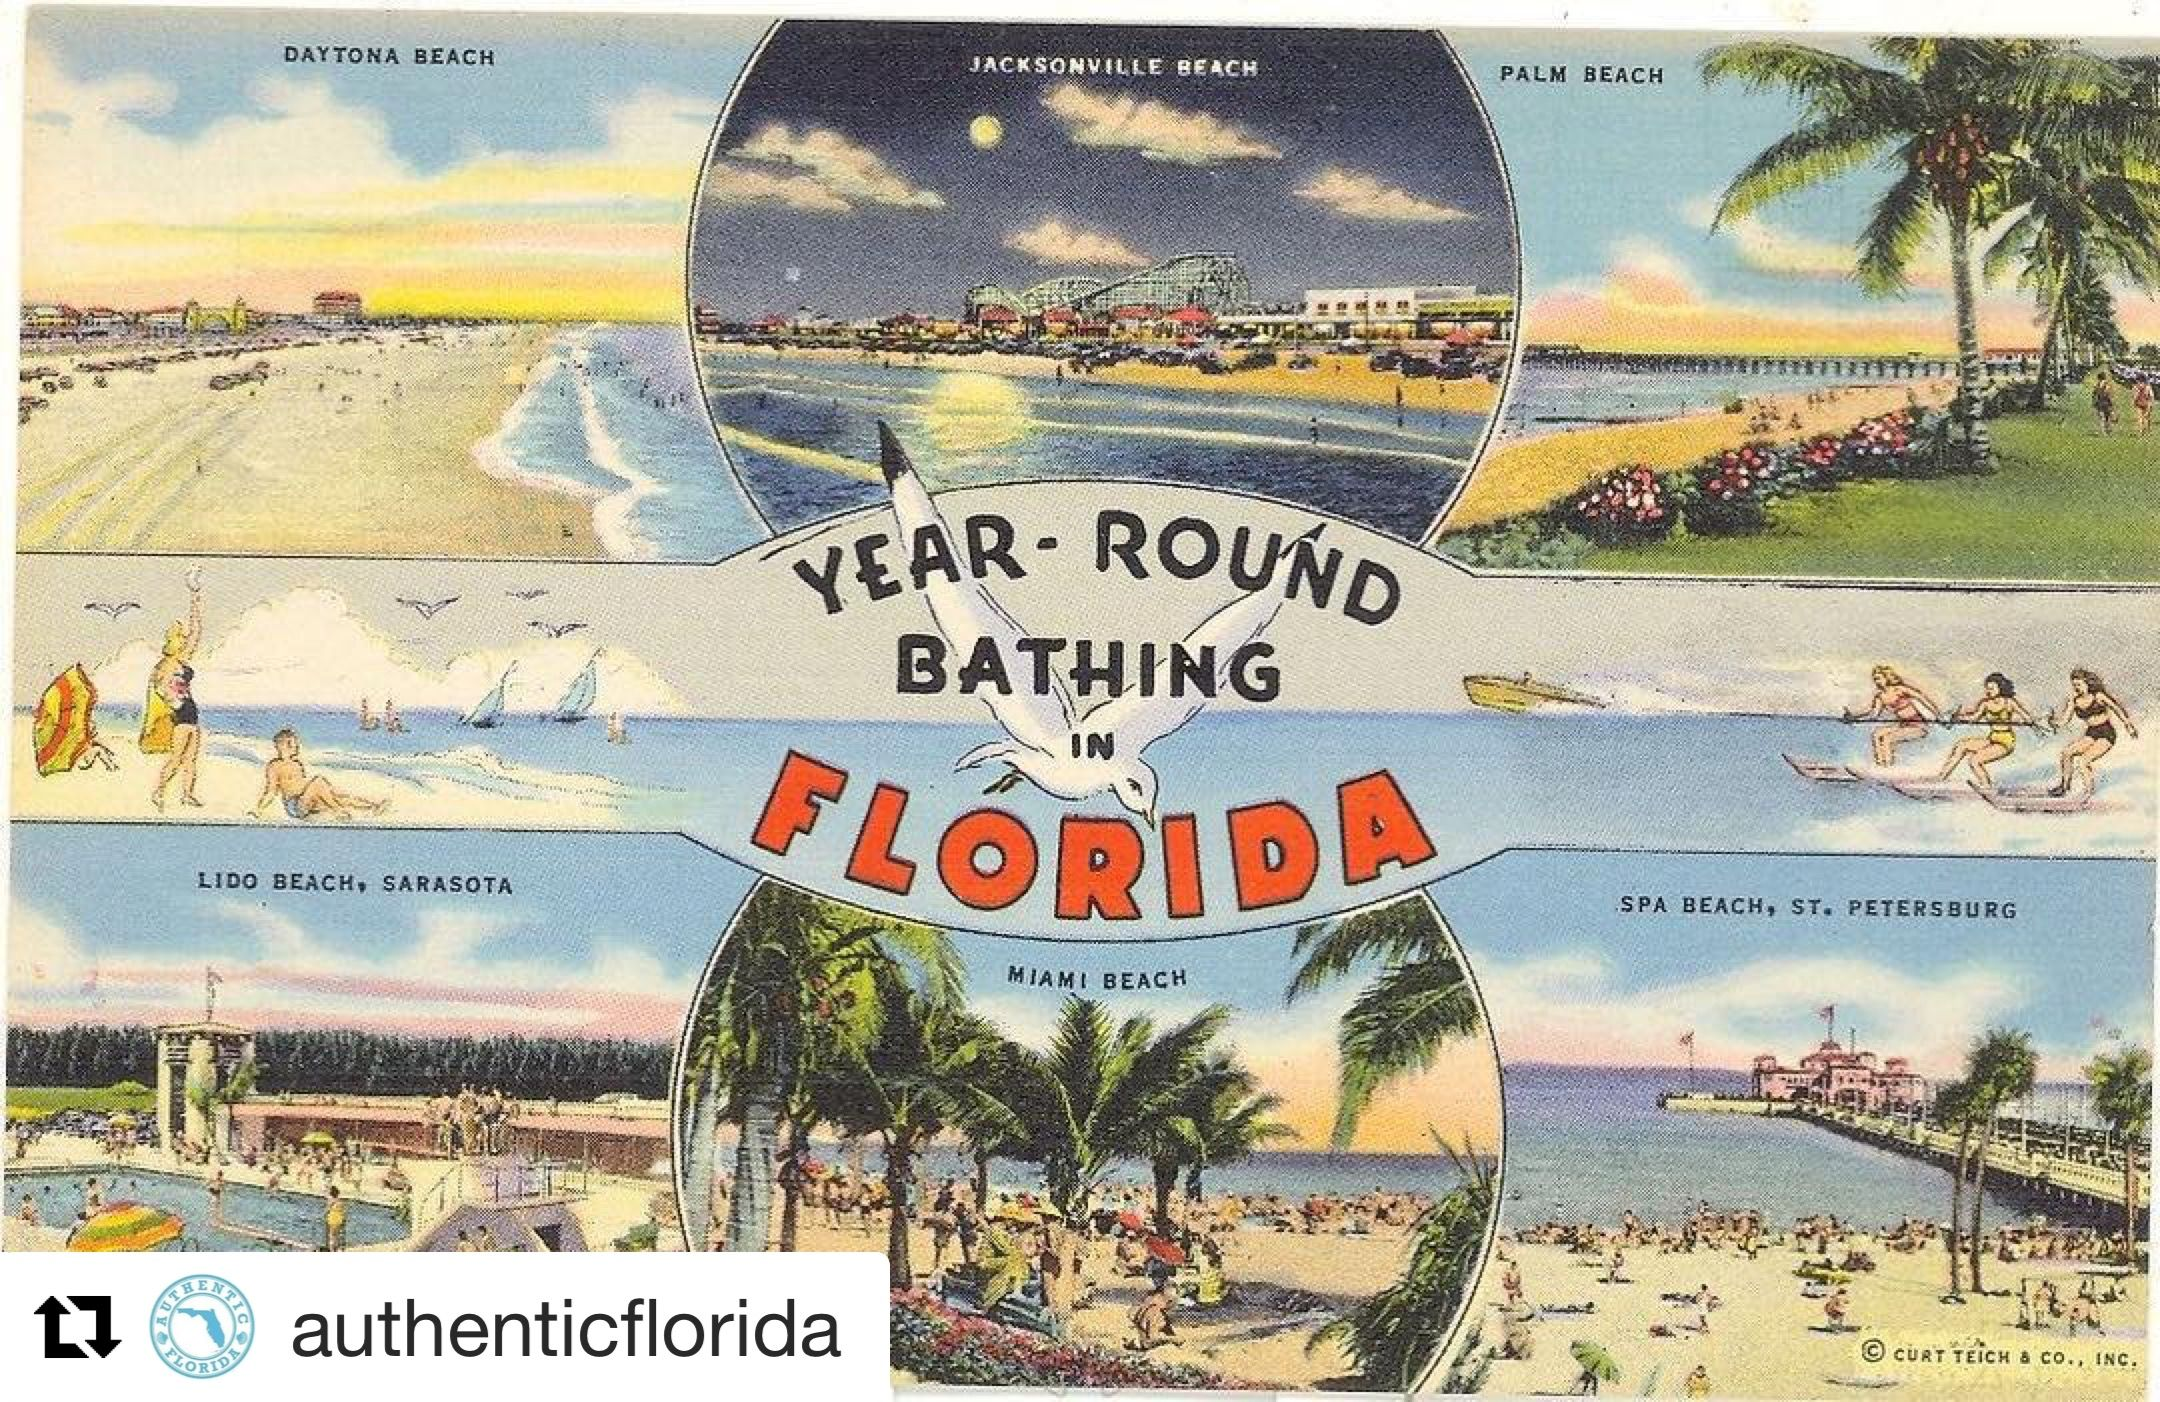 Pin By Allthingsflorida On Misc Florida Vintage Florida Postcard Vintage Postcard